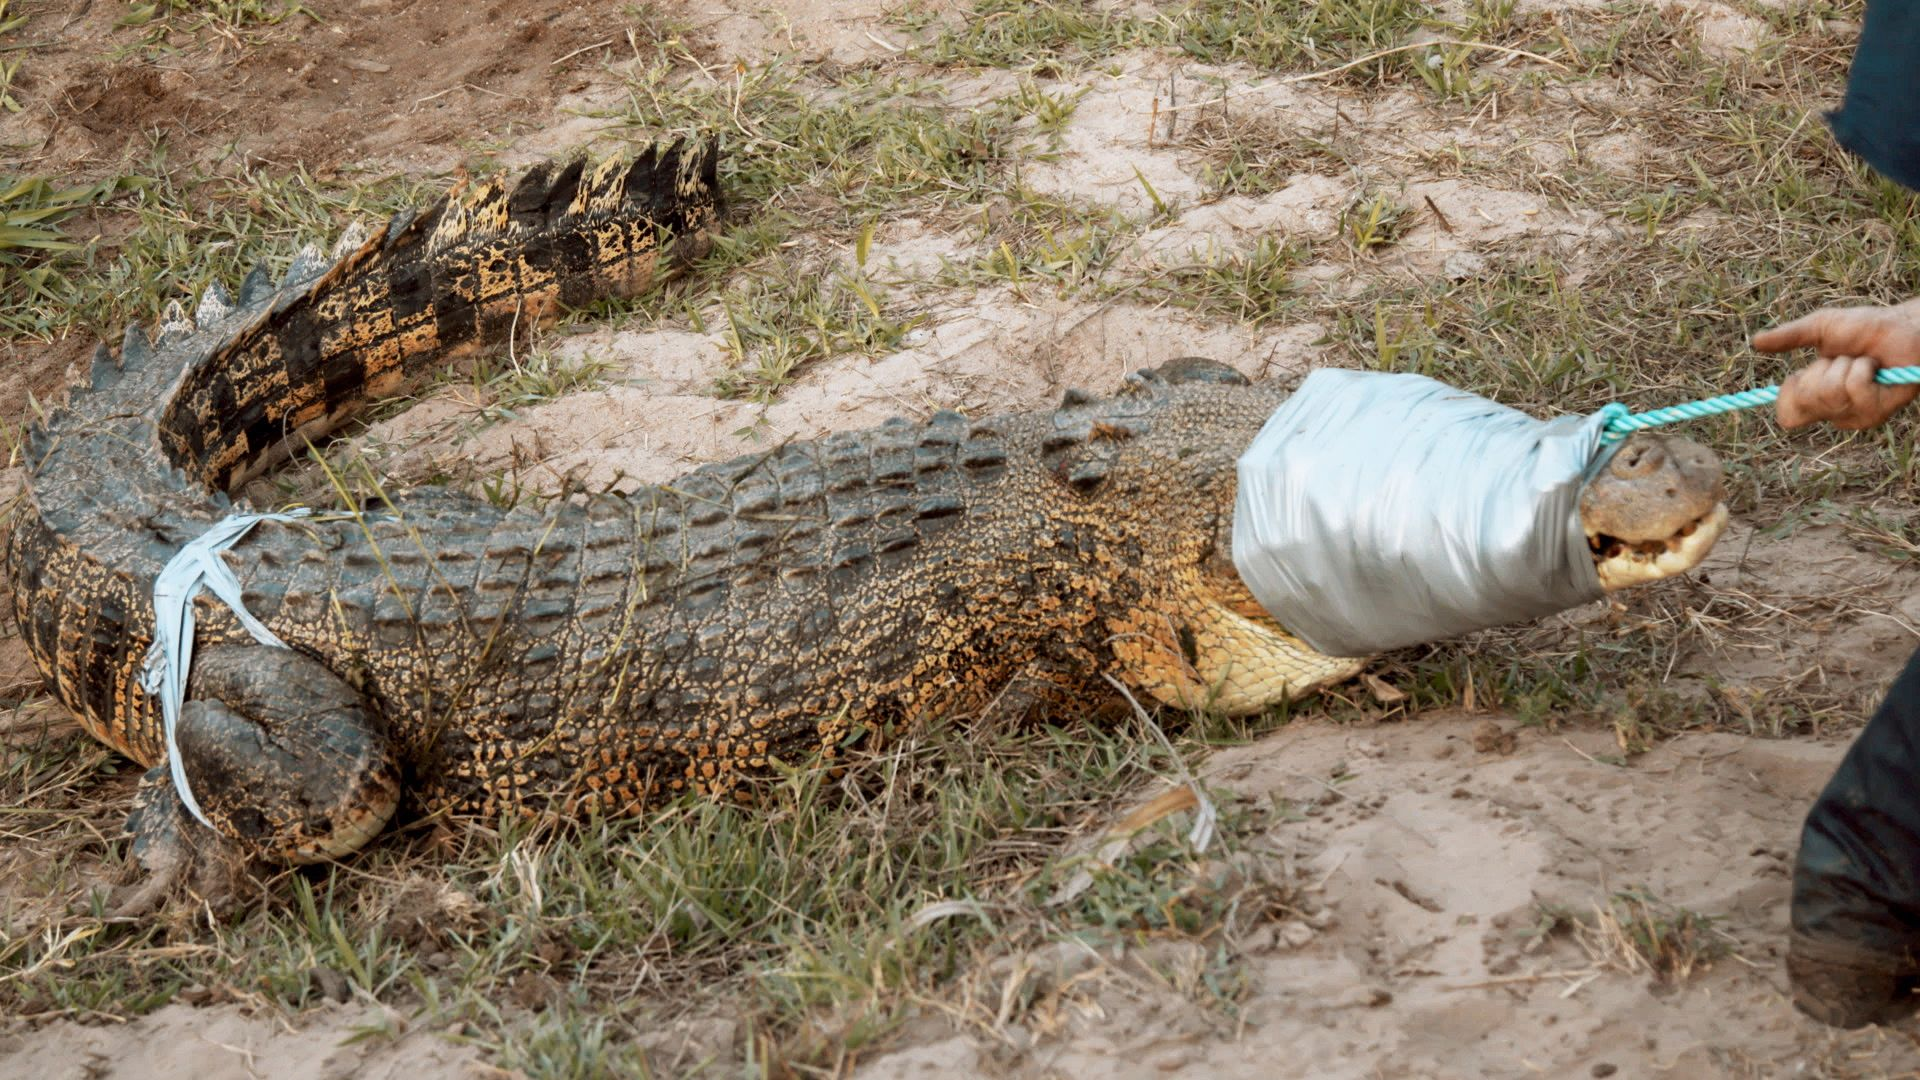 Crocodile with eyes and legs taped, ready for transportation. This is from Monster Croc Wrangler [Photo of the day - October 2021]